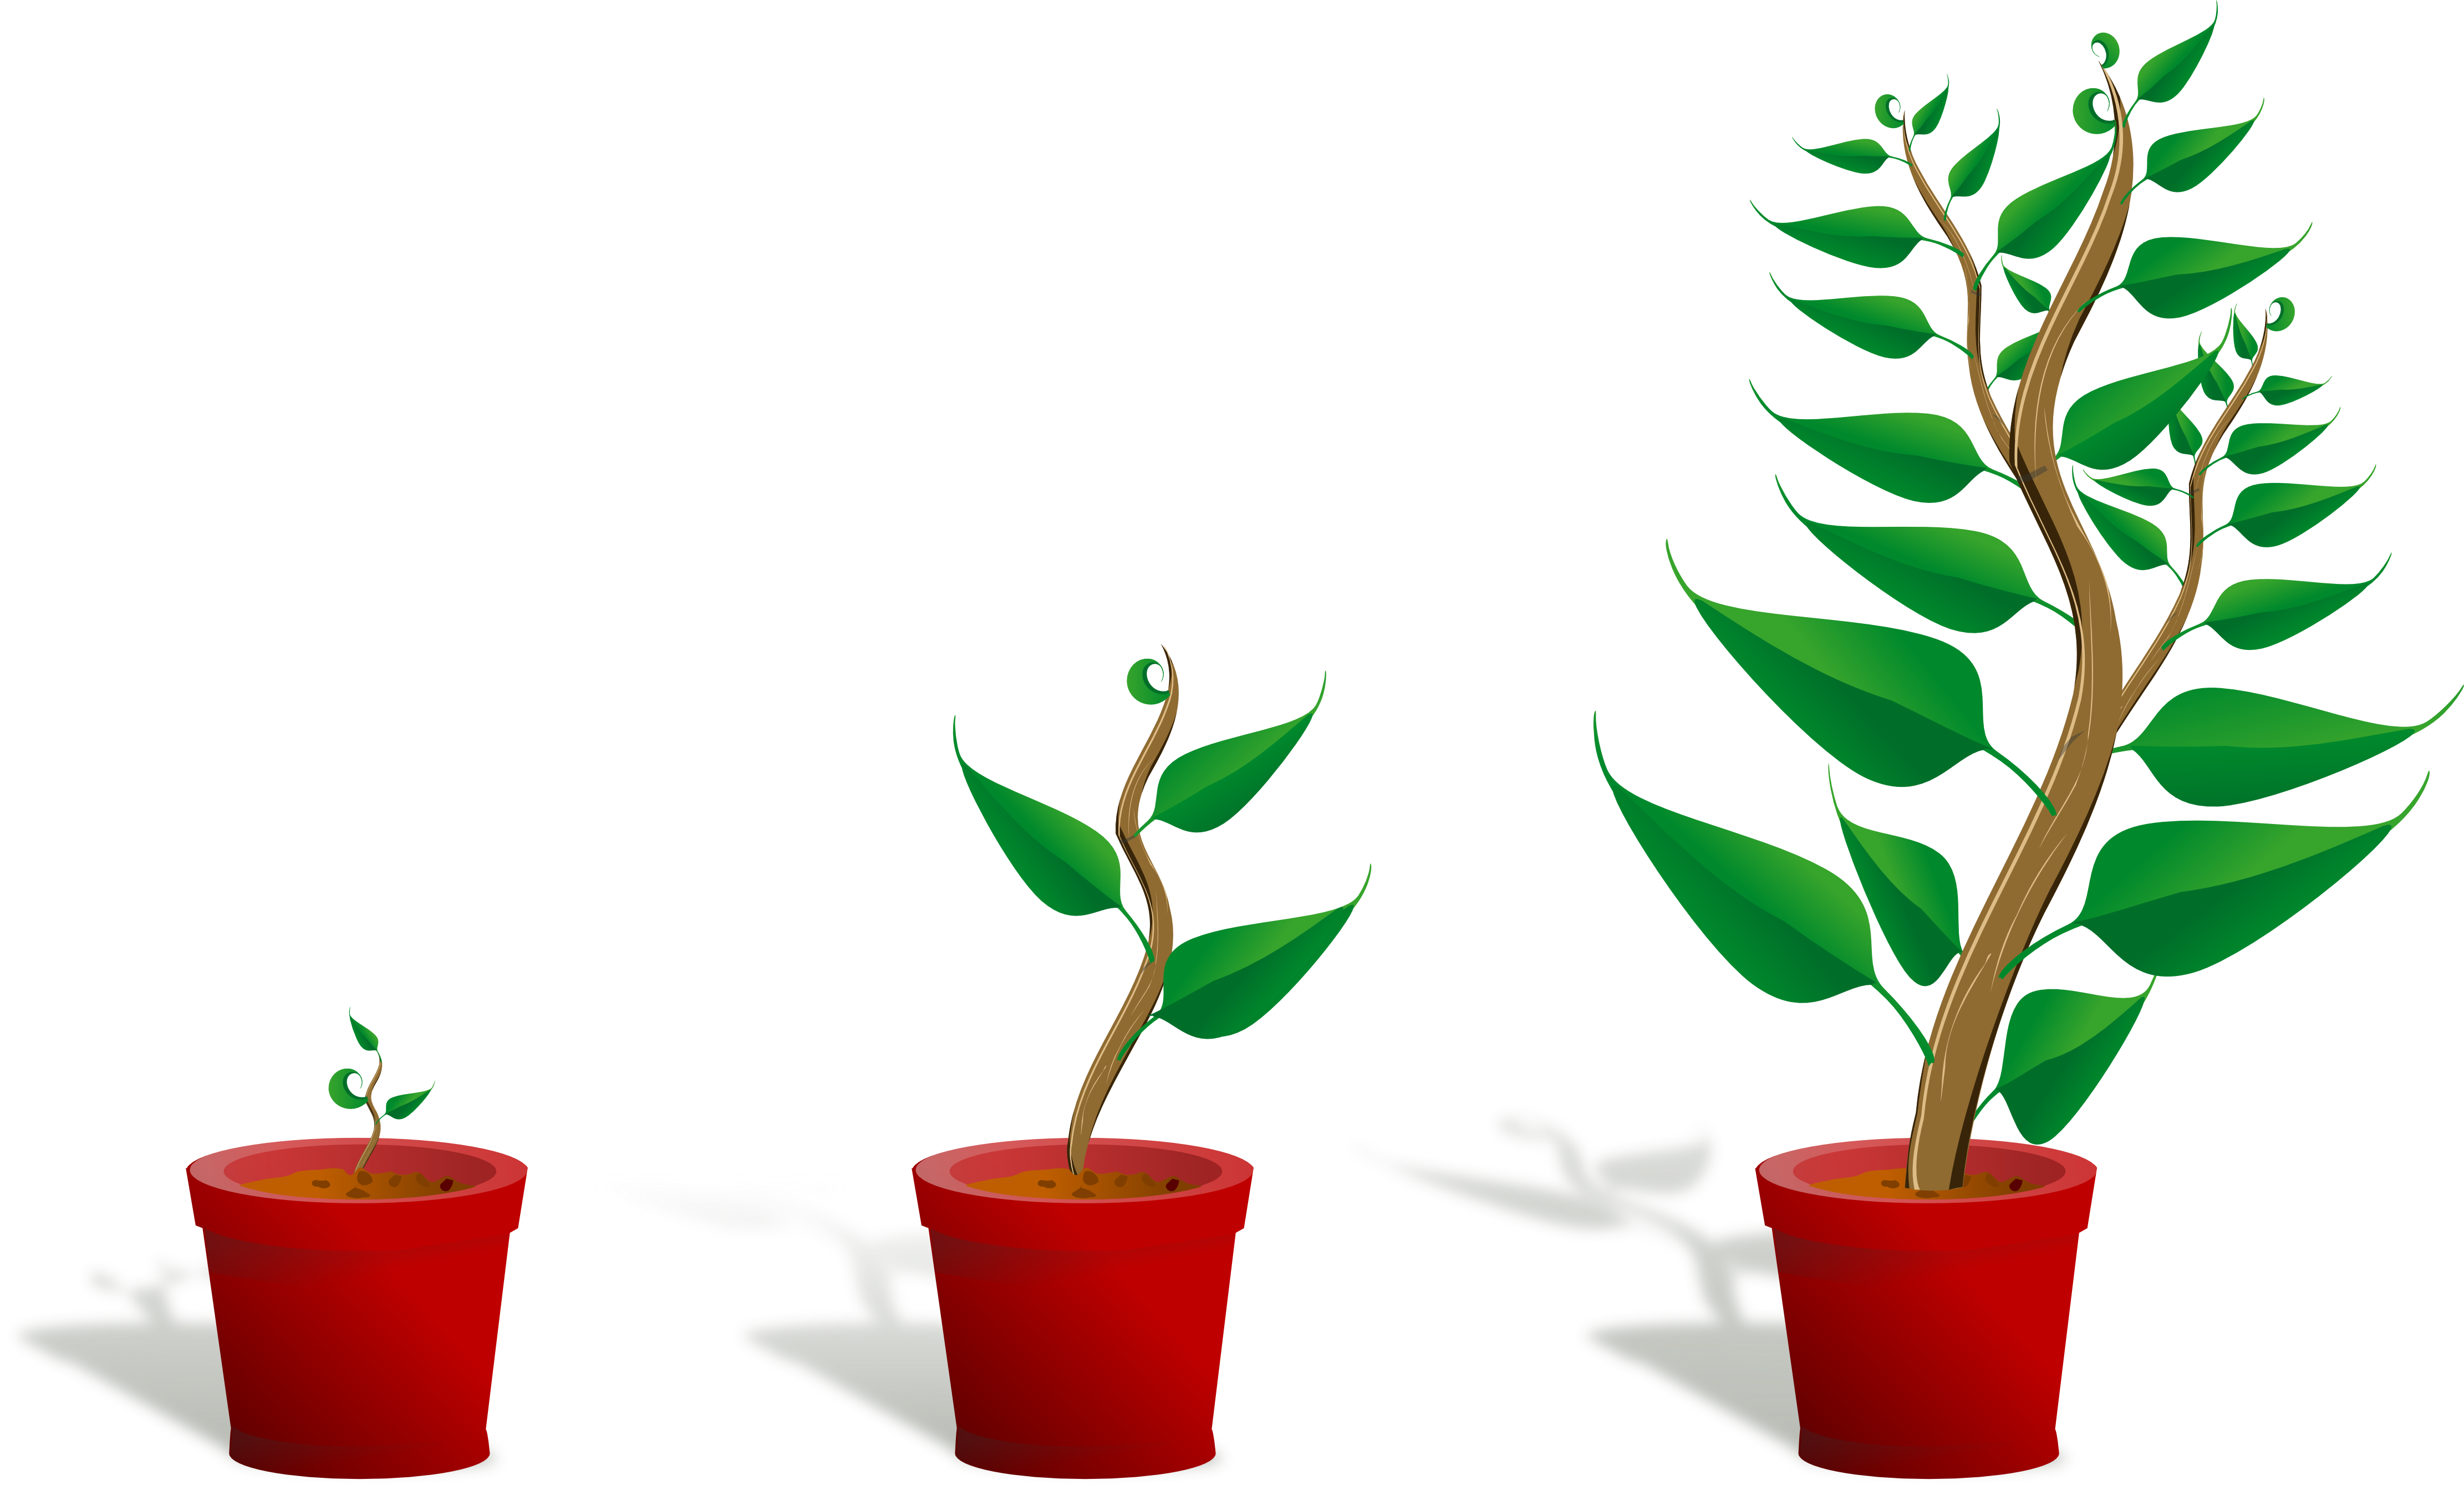 Cat tail plant clipart image royalty free stock 28+ Collection of Plant Grow Clipart | High quality, free cliparts ... image royalty free stock